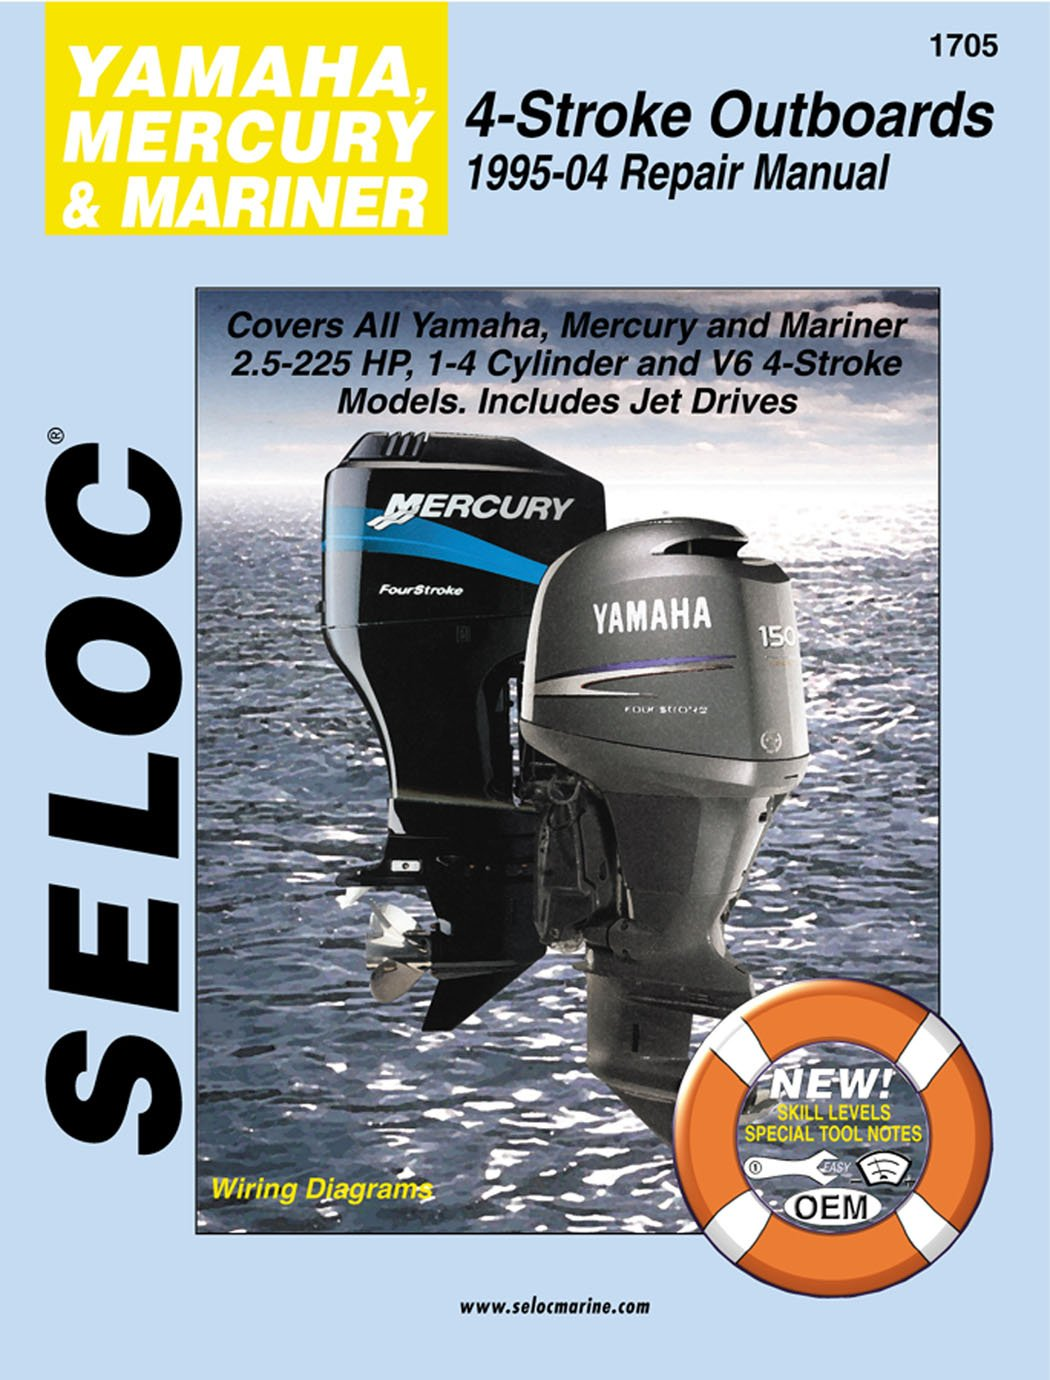 Amazon.com : Sierra International Seloc Manual 18-01705 Yamaha Mercury &  Mariner Outboards Repair 1995-2004 2.5-225 HP 1-4 Cylinder & V6 4 Stroke  Model ...